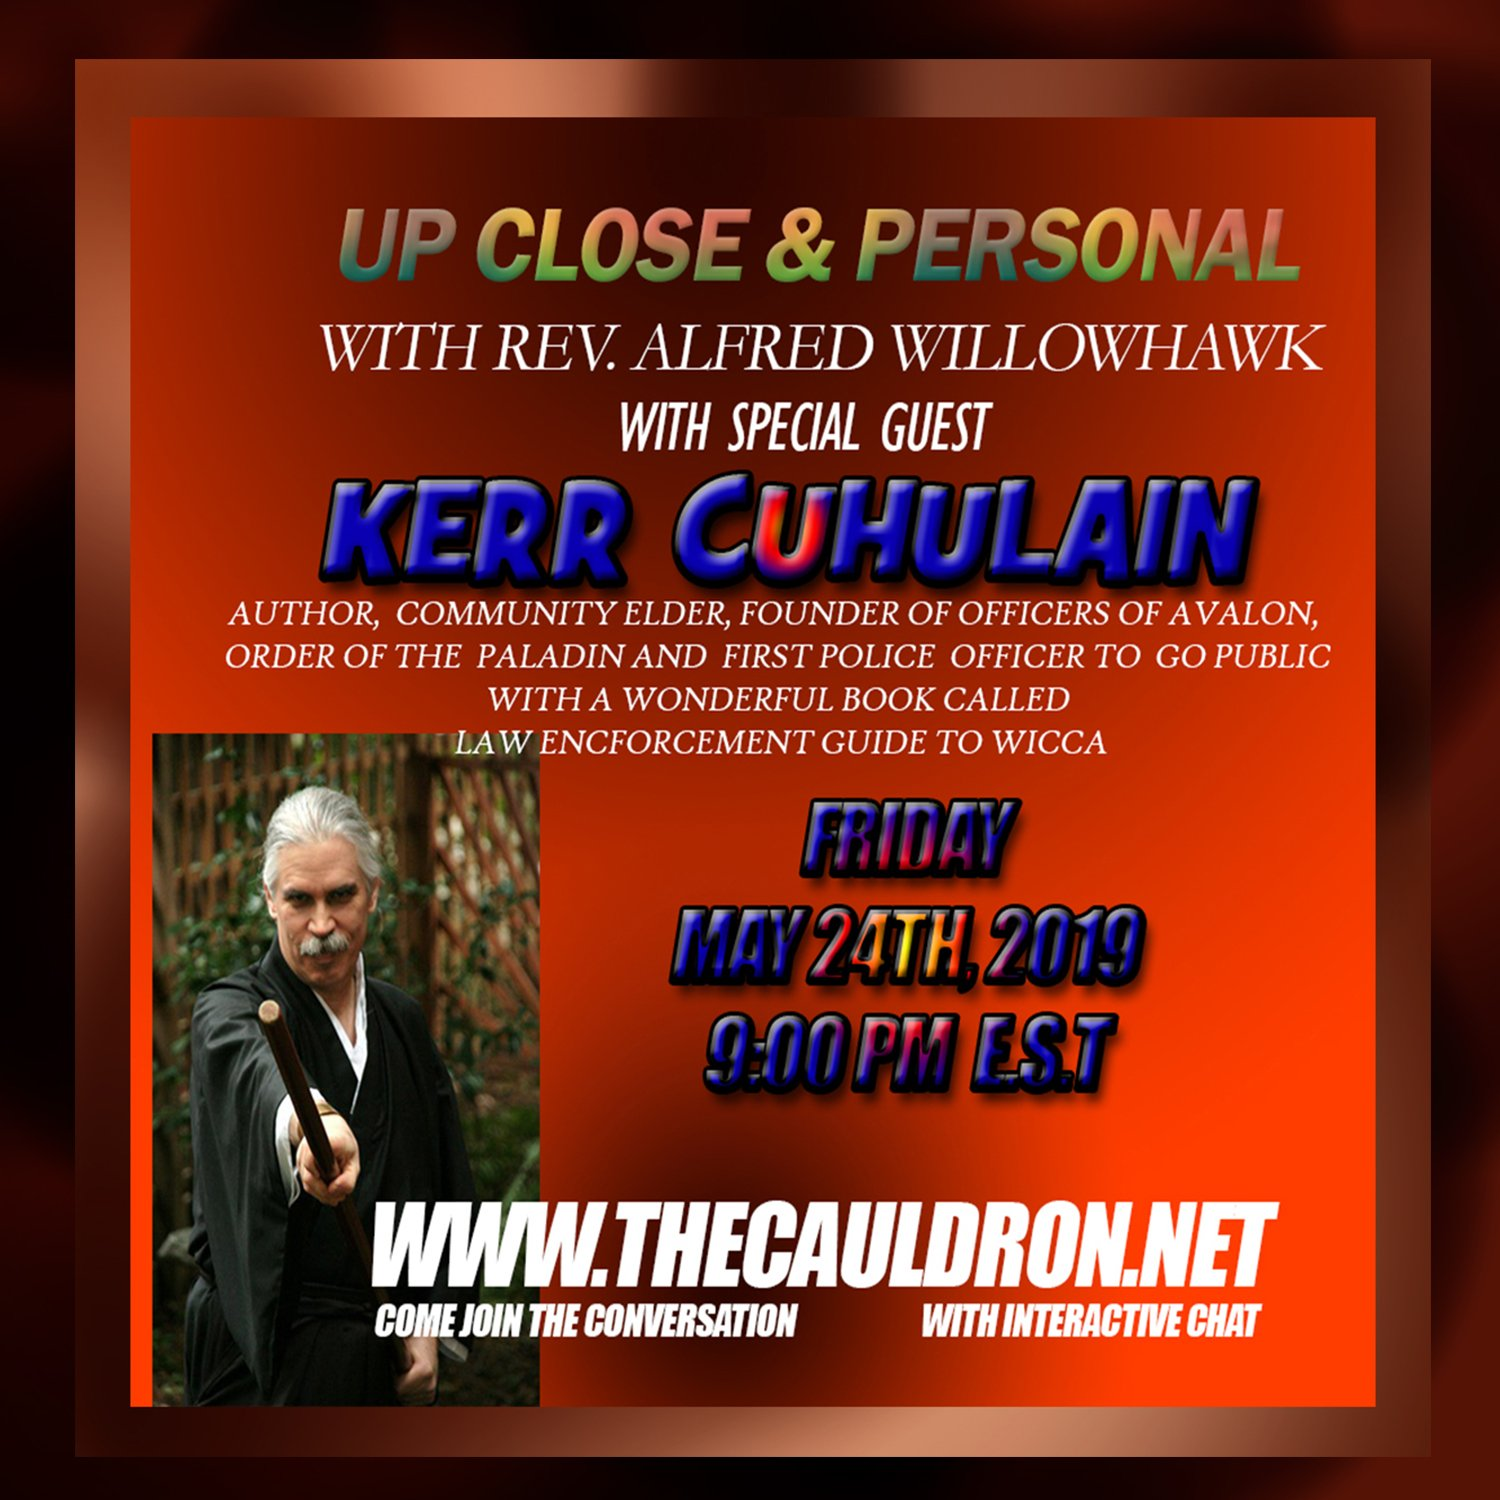 Up Close & Personal with Hon. Kerr Cuhulain